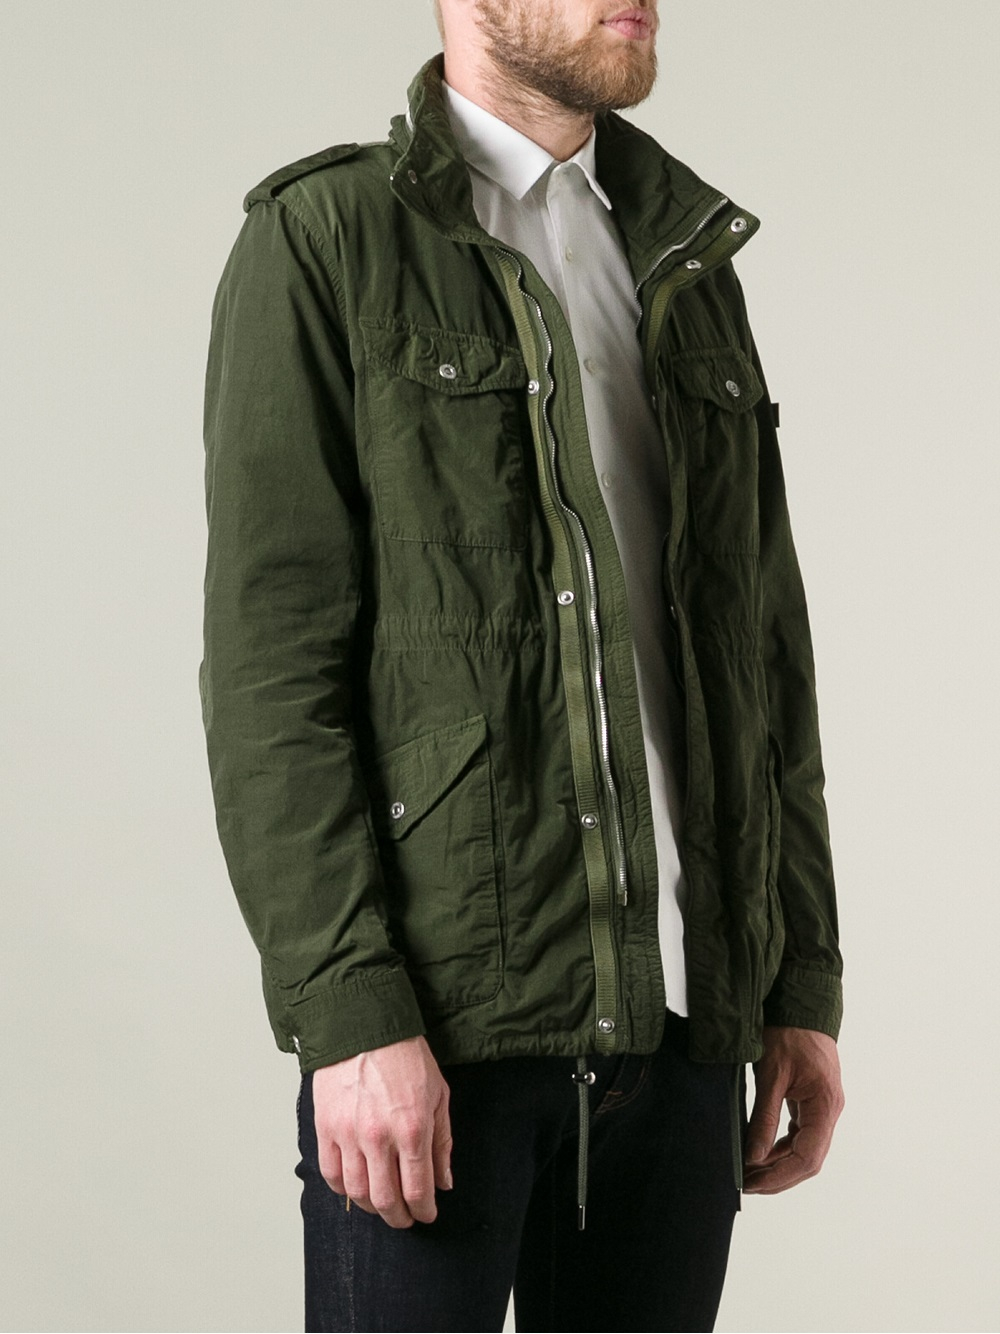 Green Military Jacket | Gommap Blog